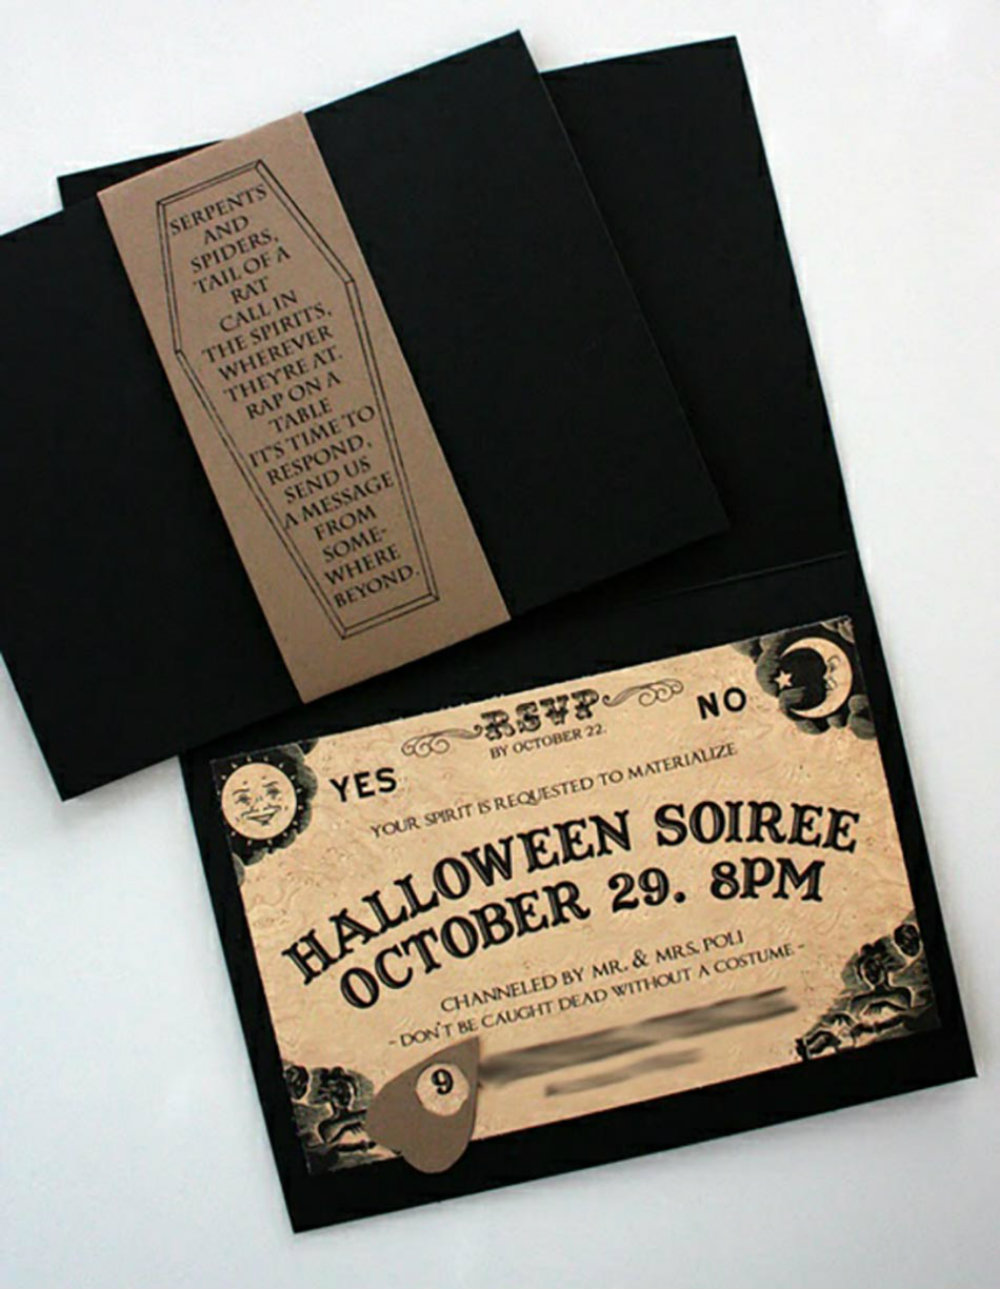 The Best Halloween Party Ideas For A Sophisticated Gathering 02 halloween party ideas The Best Halloween Party Ideas For A Sophisticated Gathering The Best Halloween Party Ideas For A Sophisticated Gathering 02